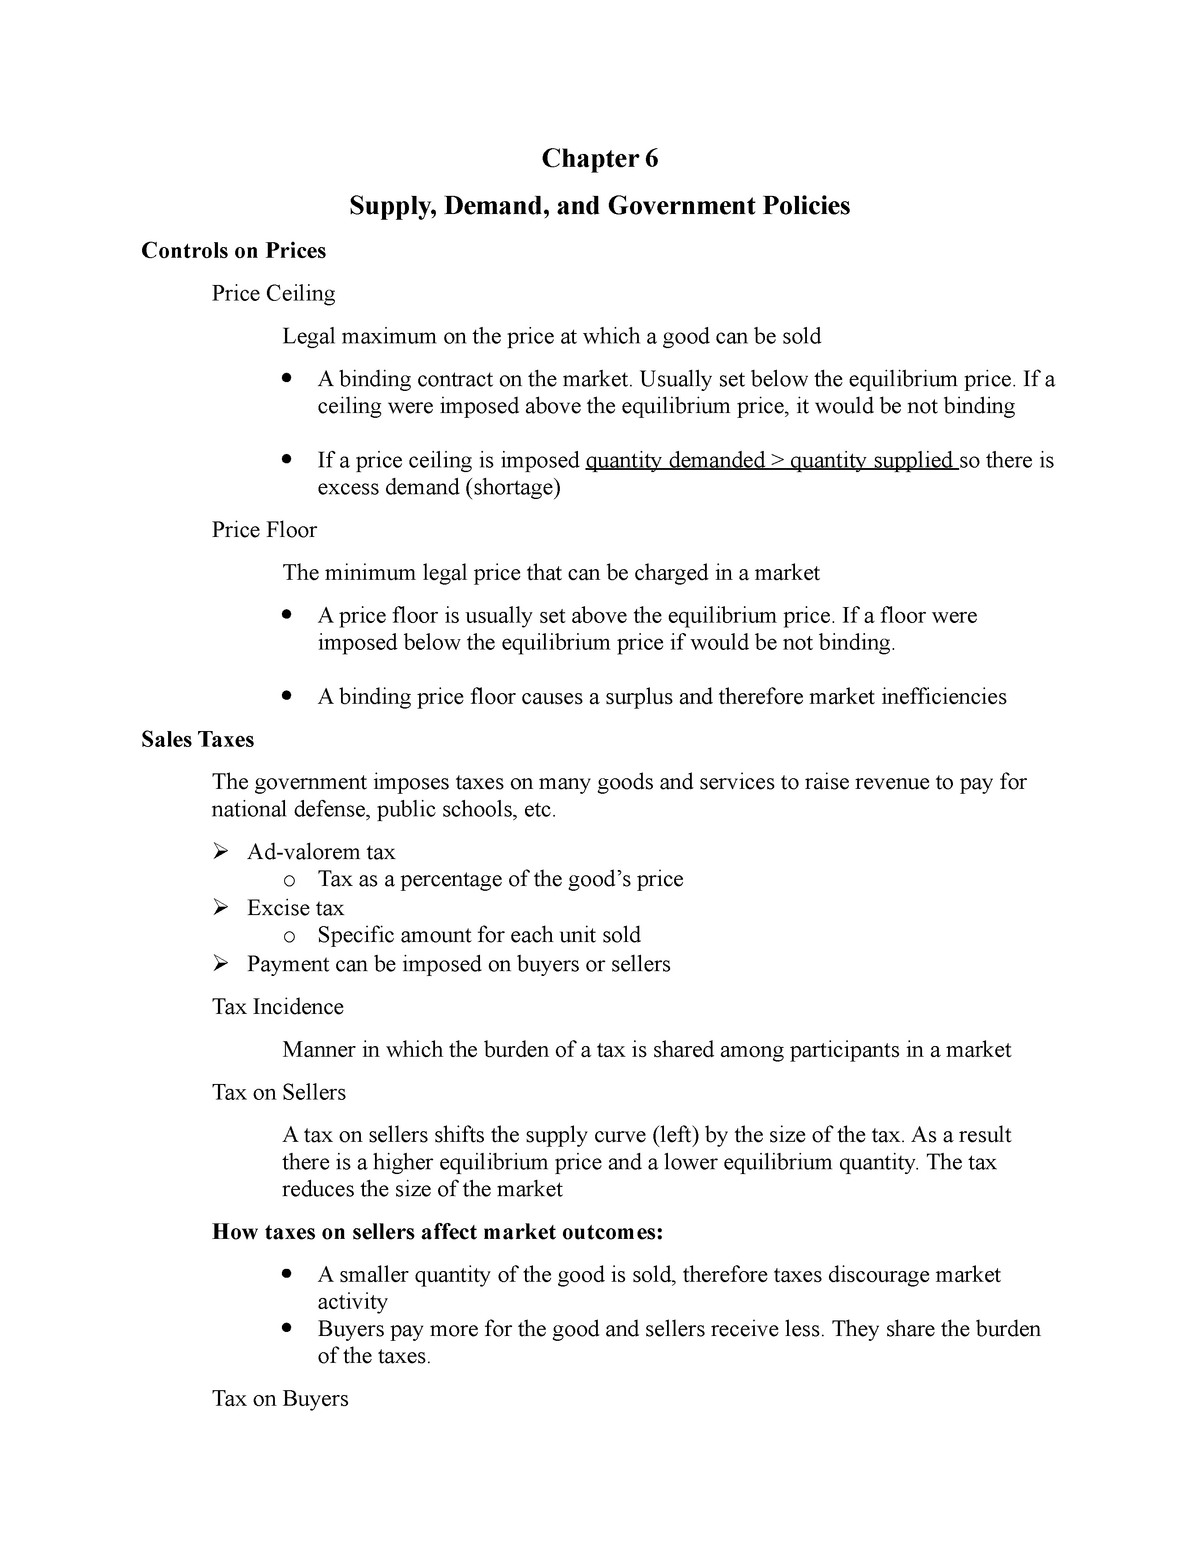 Chapter 6 Supply Demand And Gov T Policies Econ 201